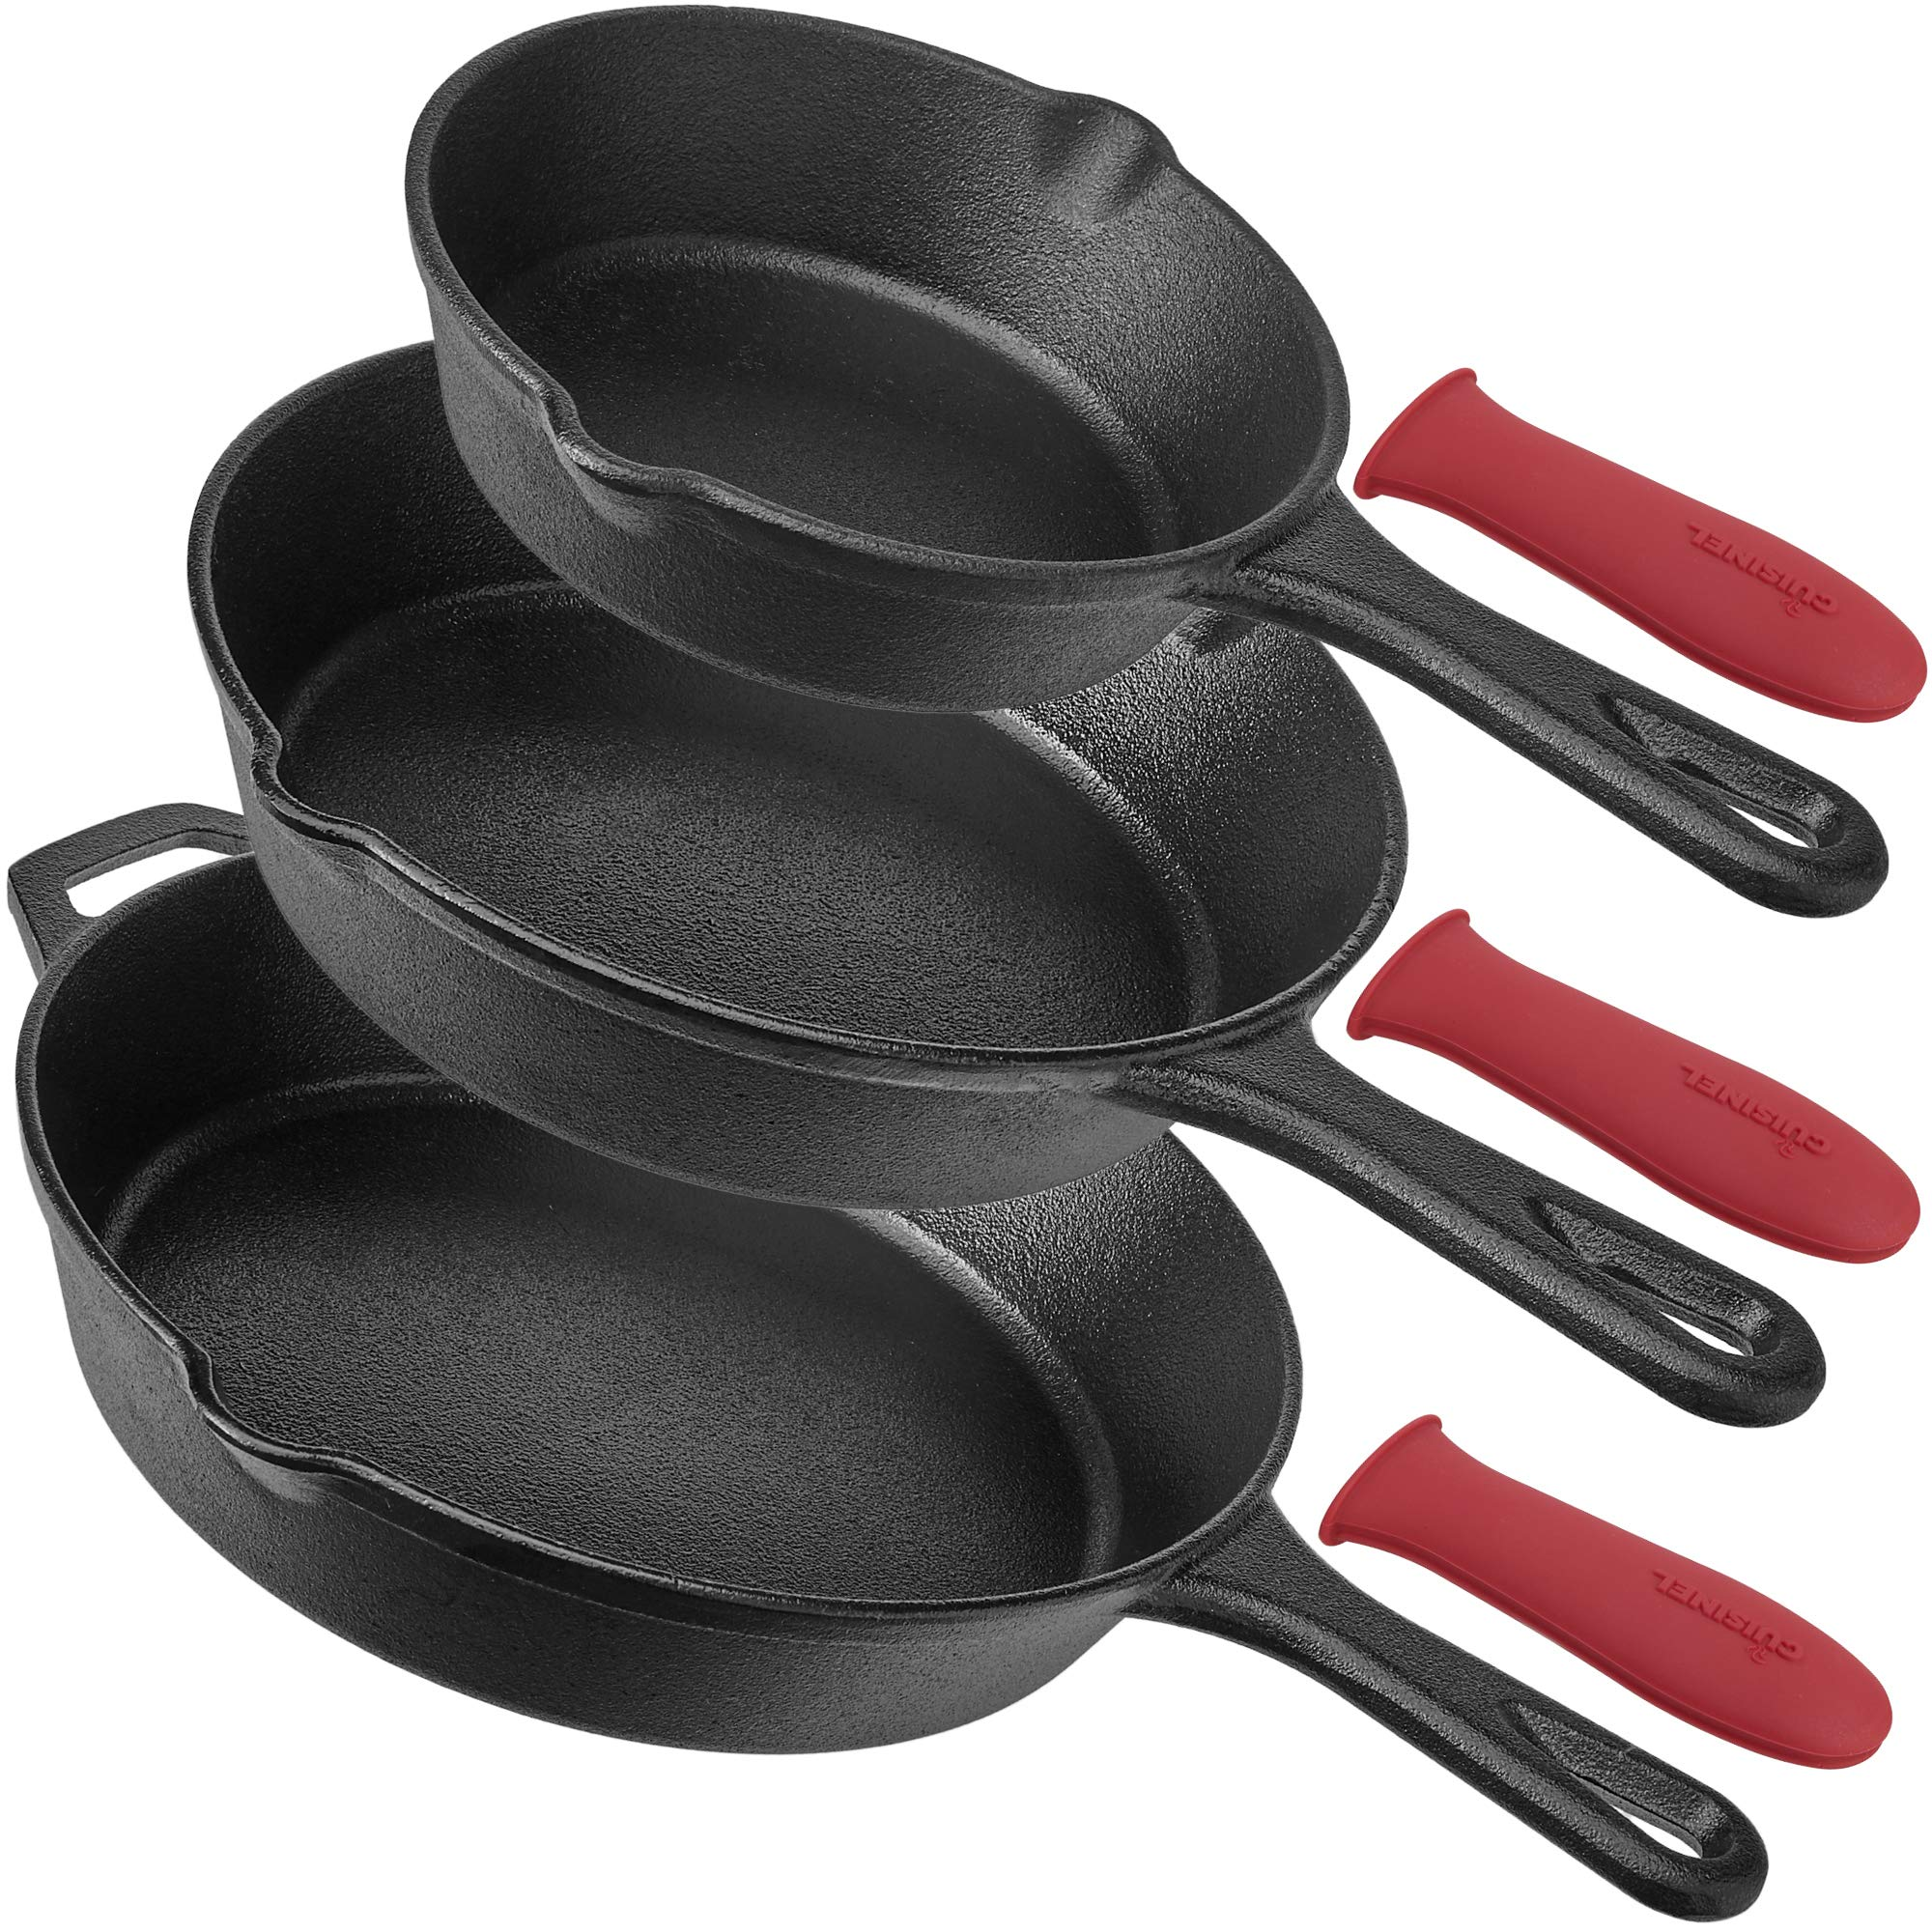 cuisinel Pre-Seasoned Cast Iron Skillet 3-Piece Chef Set (6 8 10-Inch) Oven Safe Cookware | 3 Heat-Resistant Holders | Indoor and Outdoor Use | G, 6-Inch 8-Inch Inch, Black by cuisinel (Image #1)